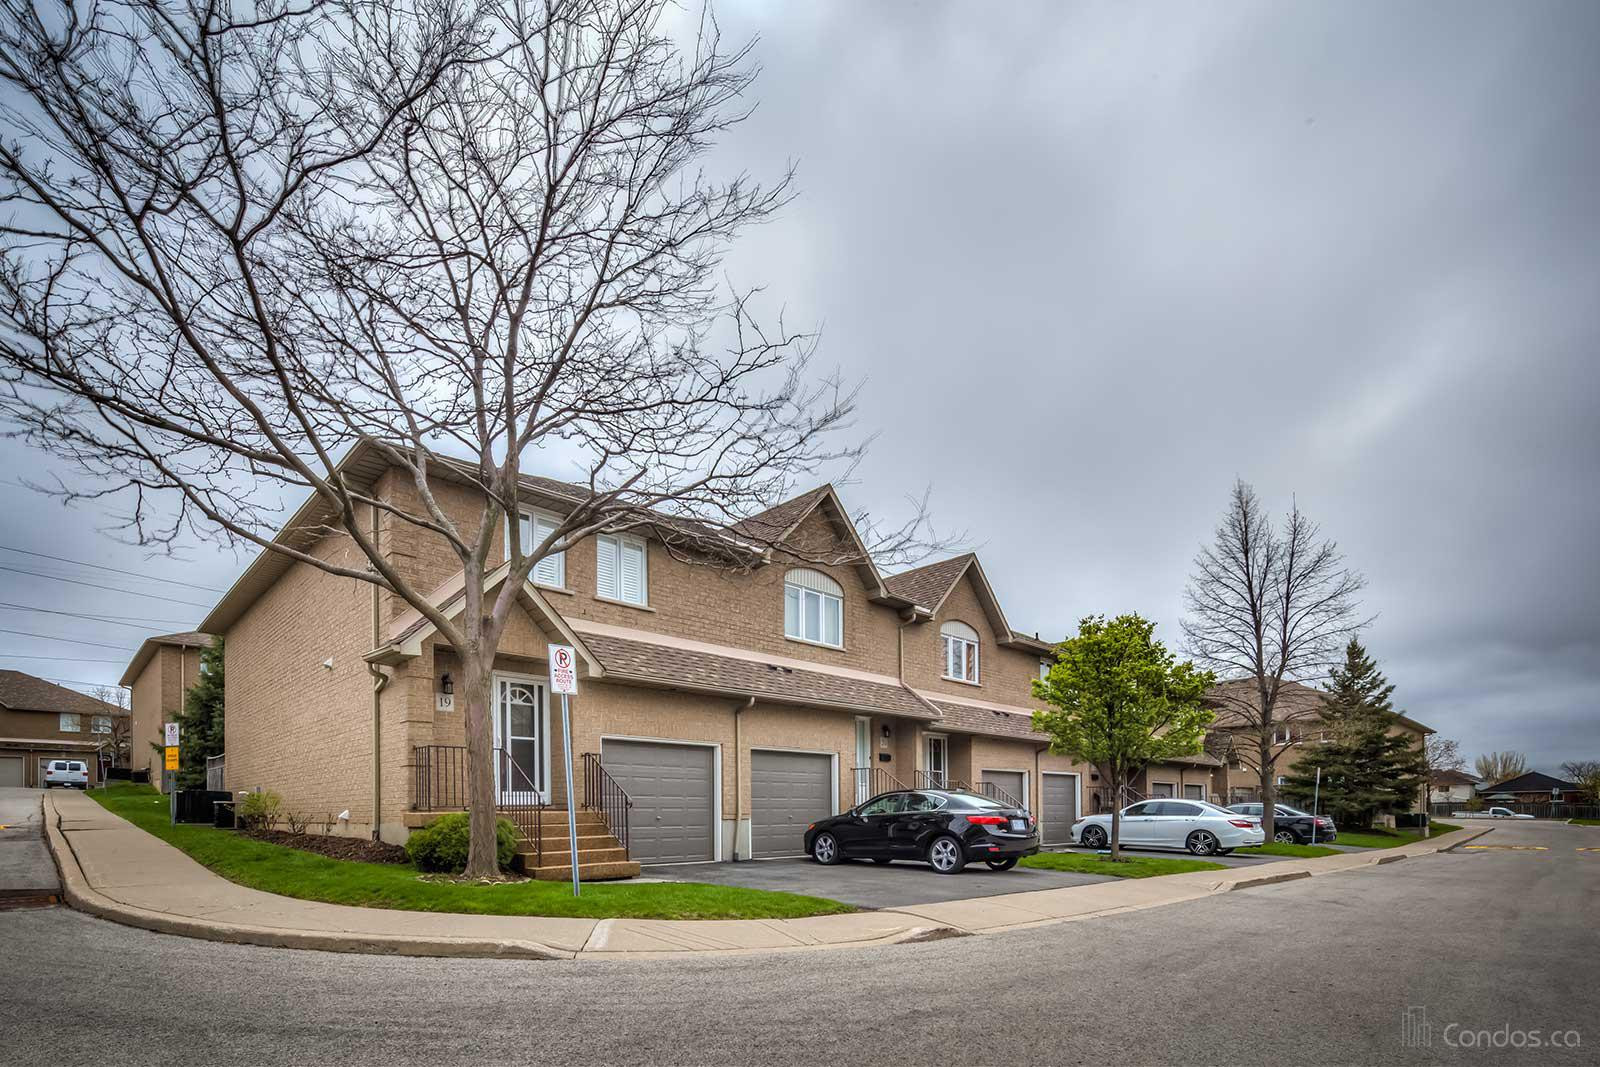 100 Vineberg Condos at 100 Vineberg Dr, Glanbrook 0